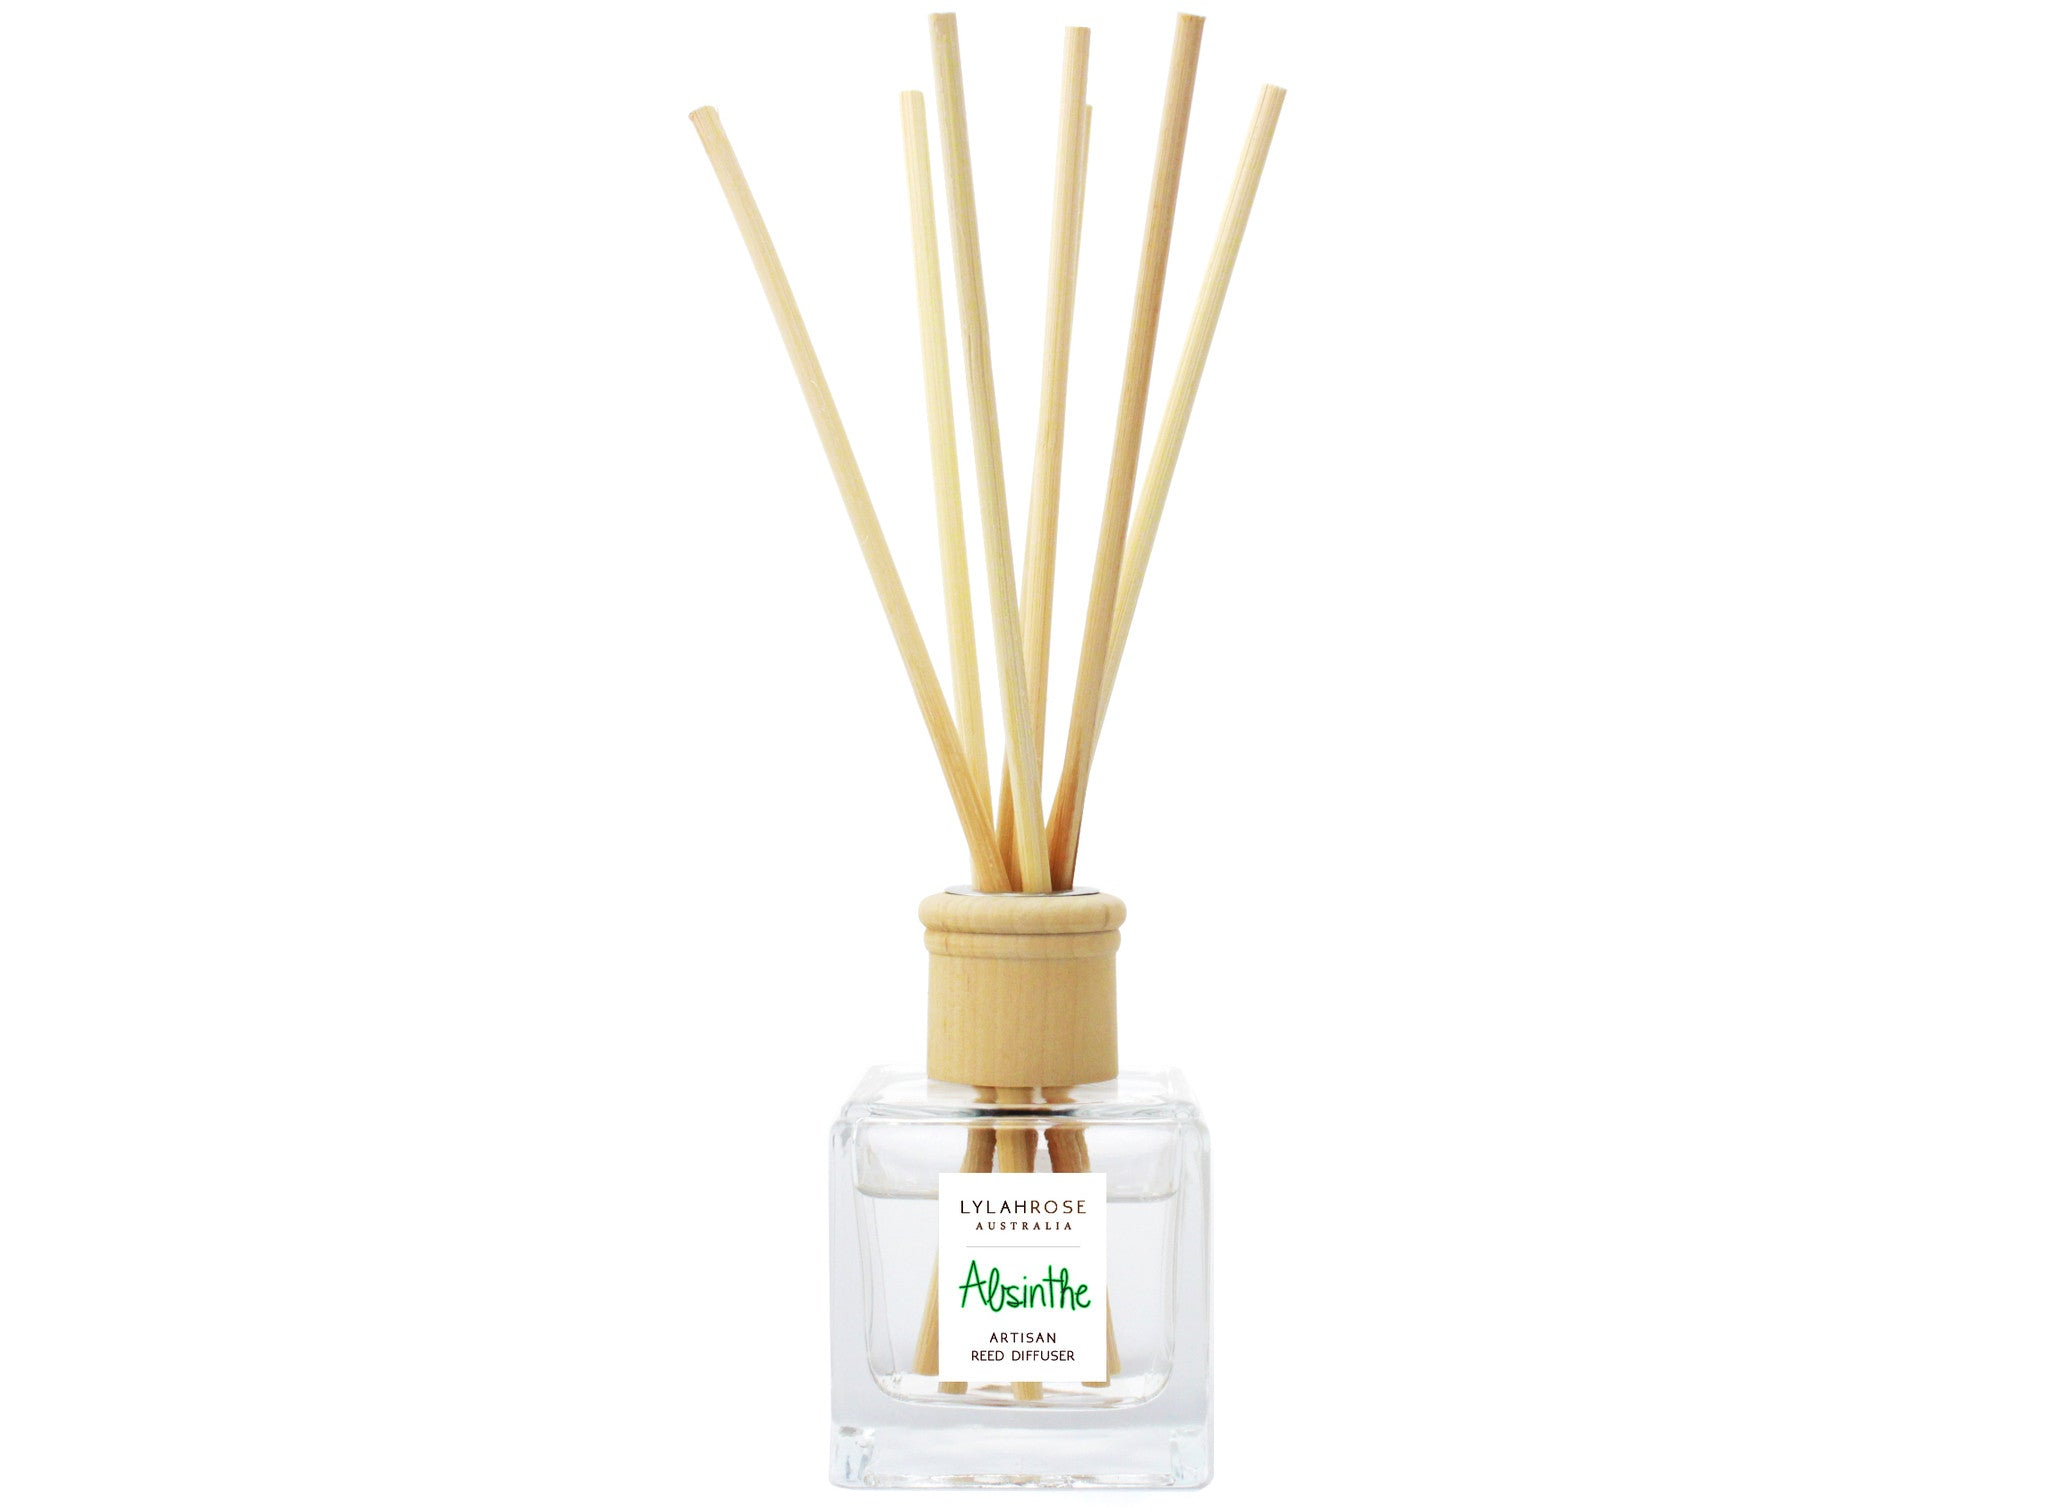 wholesale-absinthe-140ml-reed-diffuser